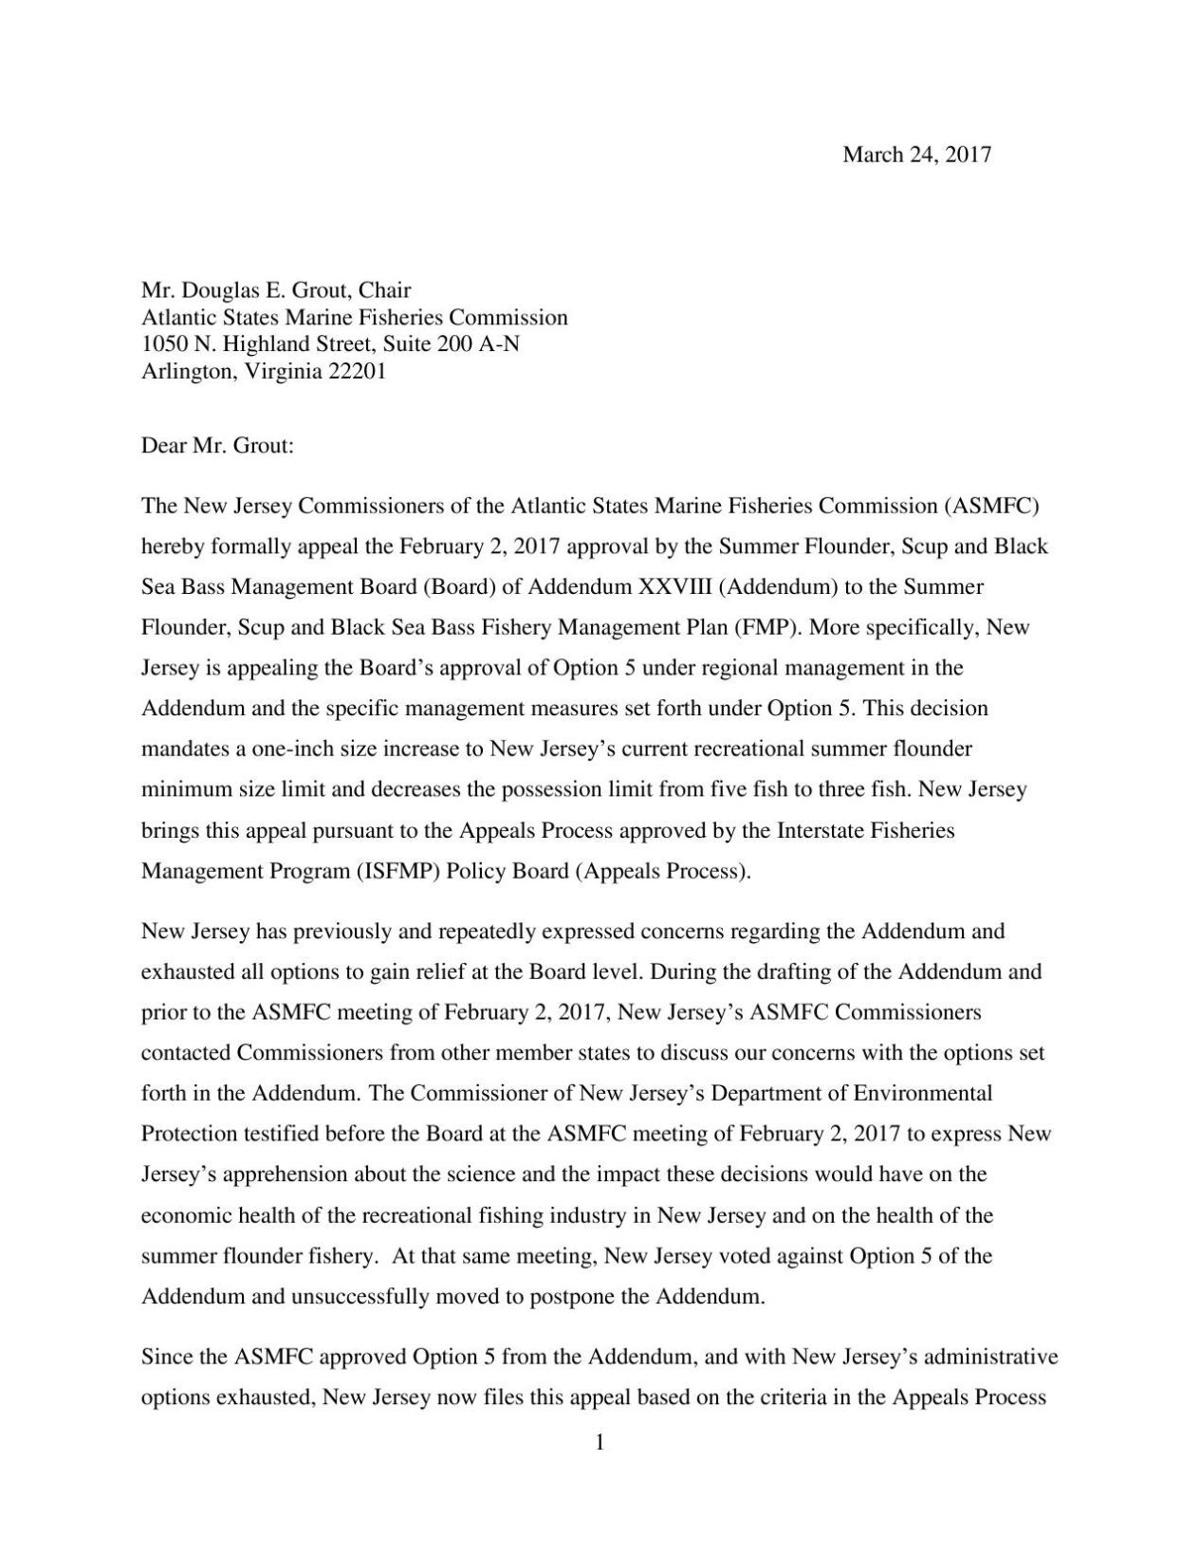 New Jersey Appeal Letter to the Atlantic States Marine Fisheries Commission